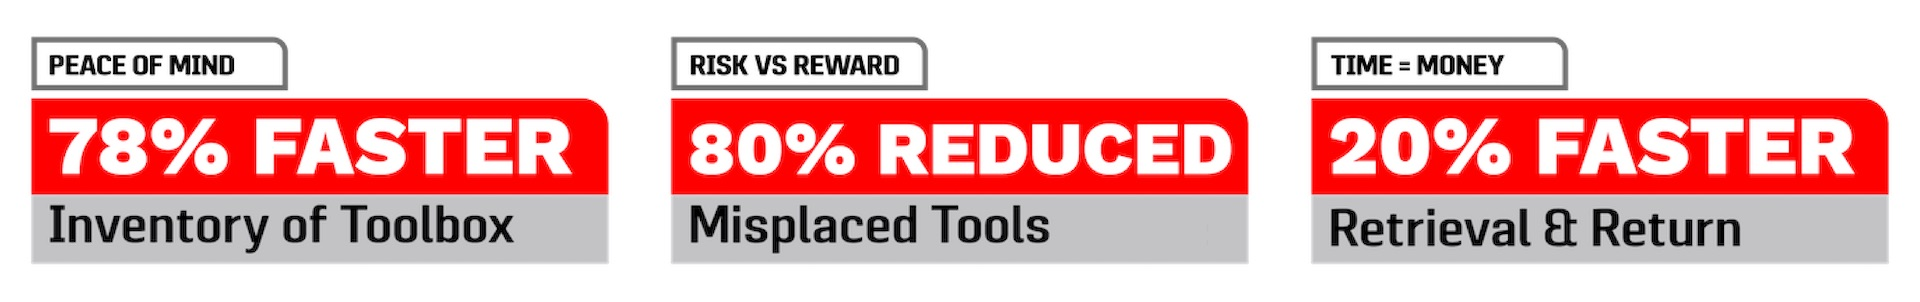 78% faster inventory, 80% less misplaced tools, 20% quicker retrieval